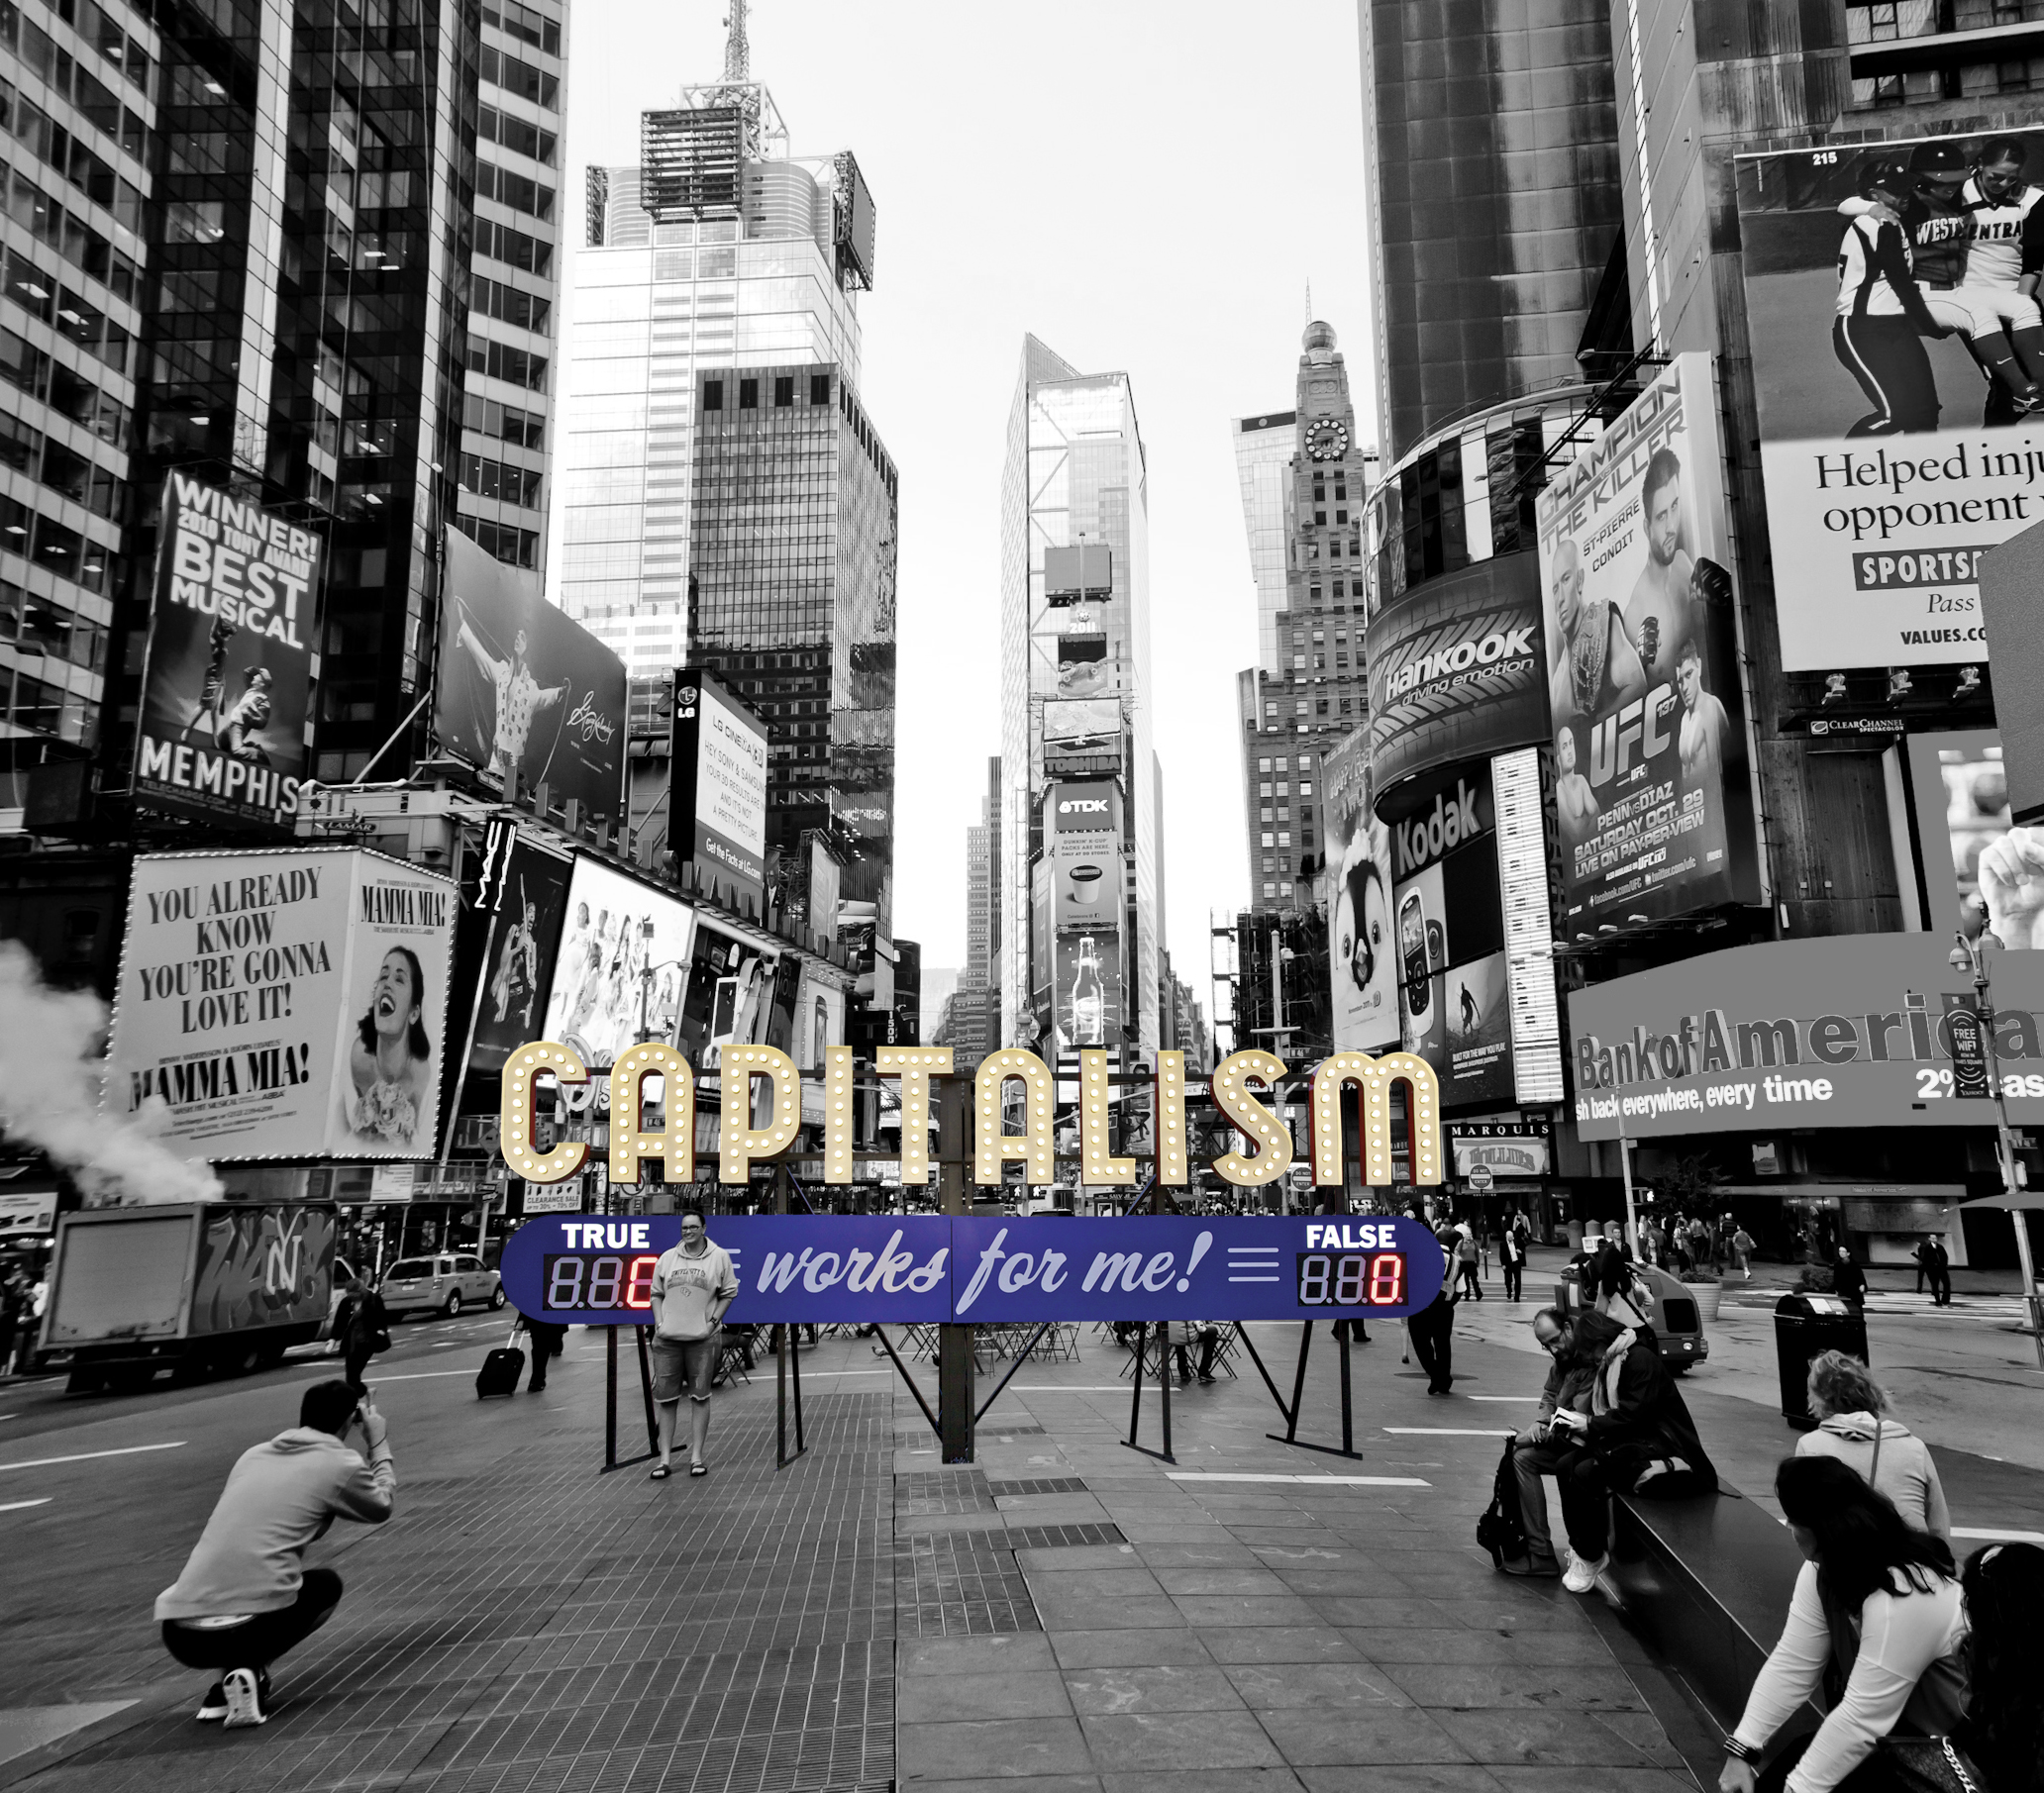 Capitalism in Times Square, NYC